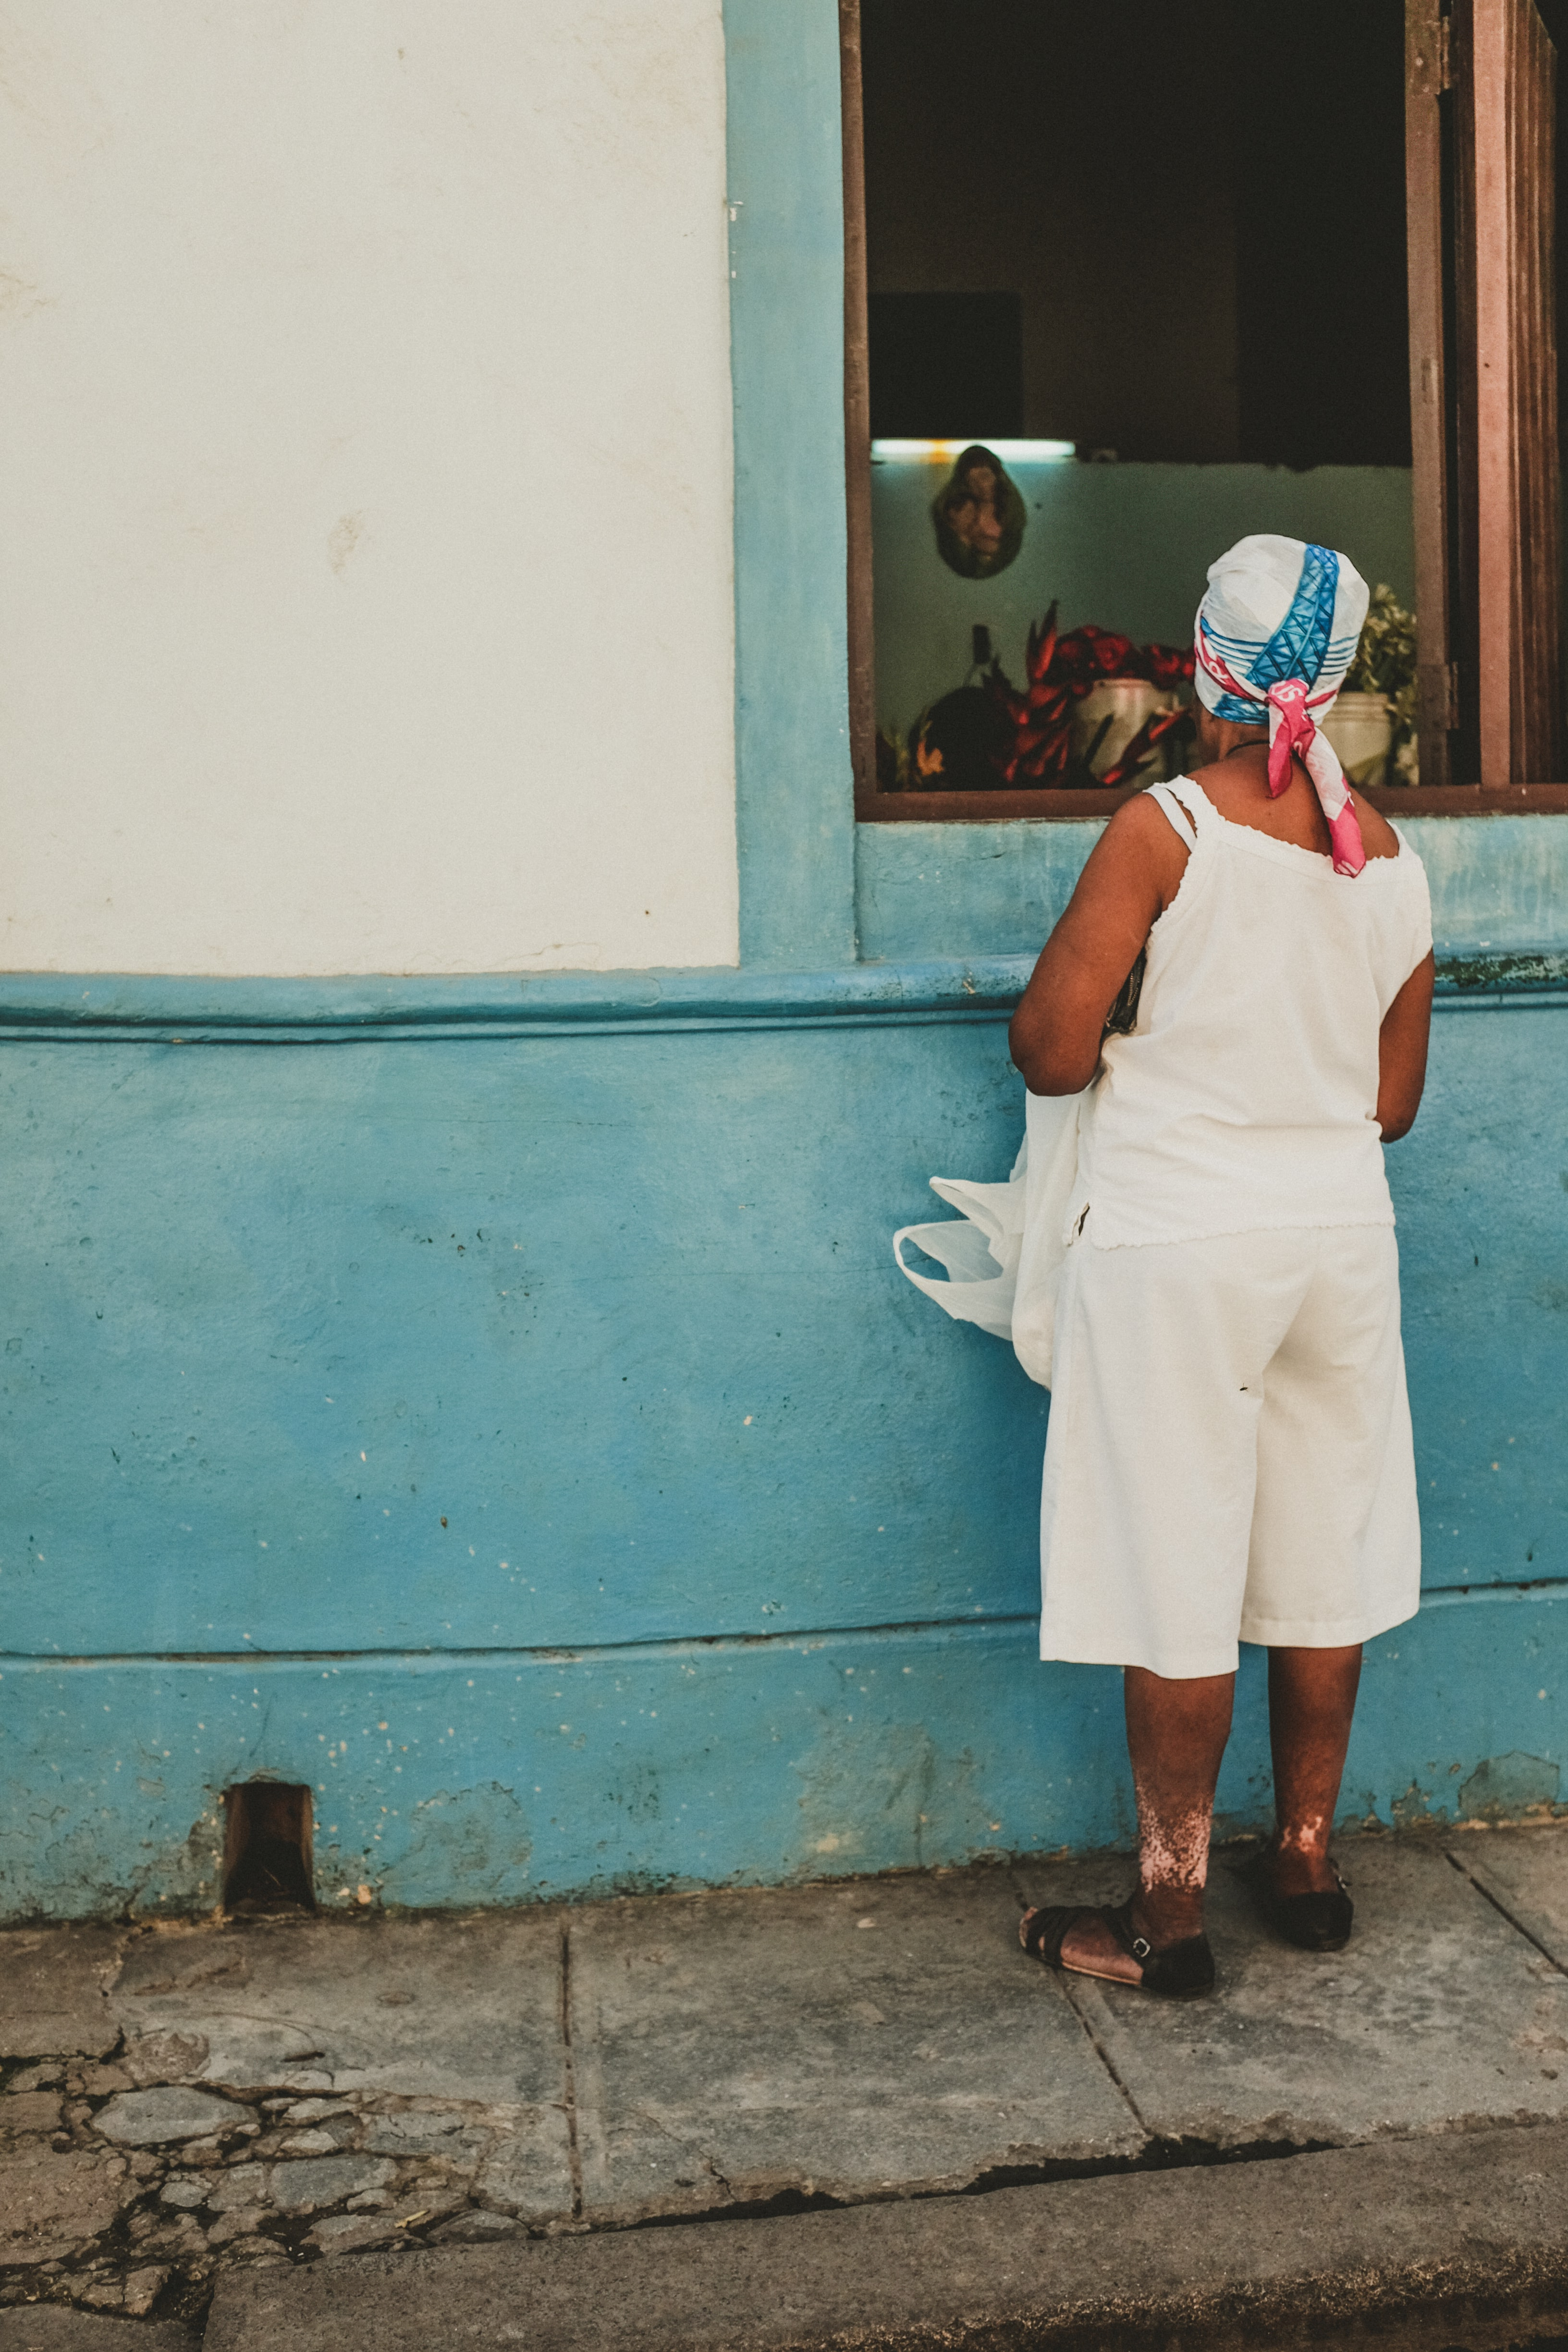 An old woman wearing white, standing in front of a blue and white wall on the walking path in old Havana.